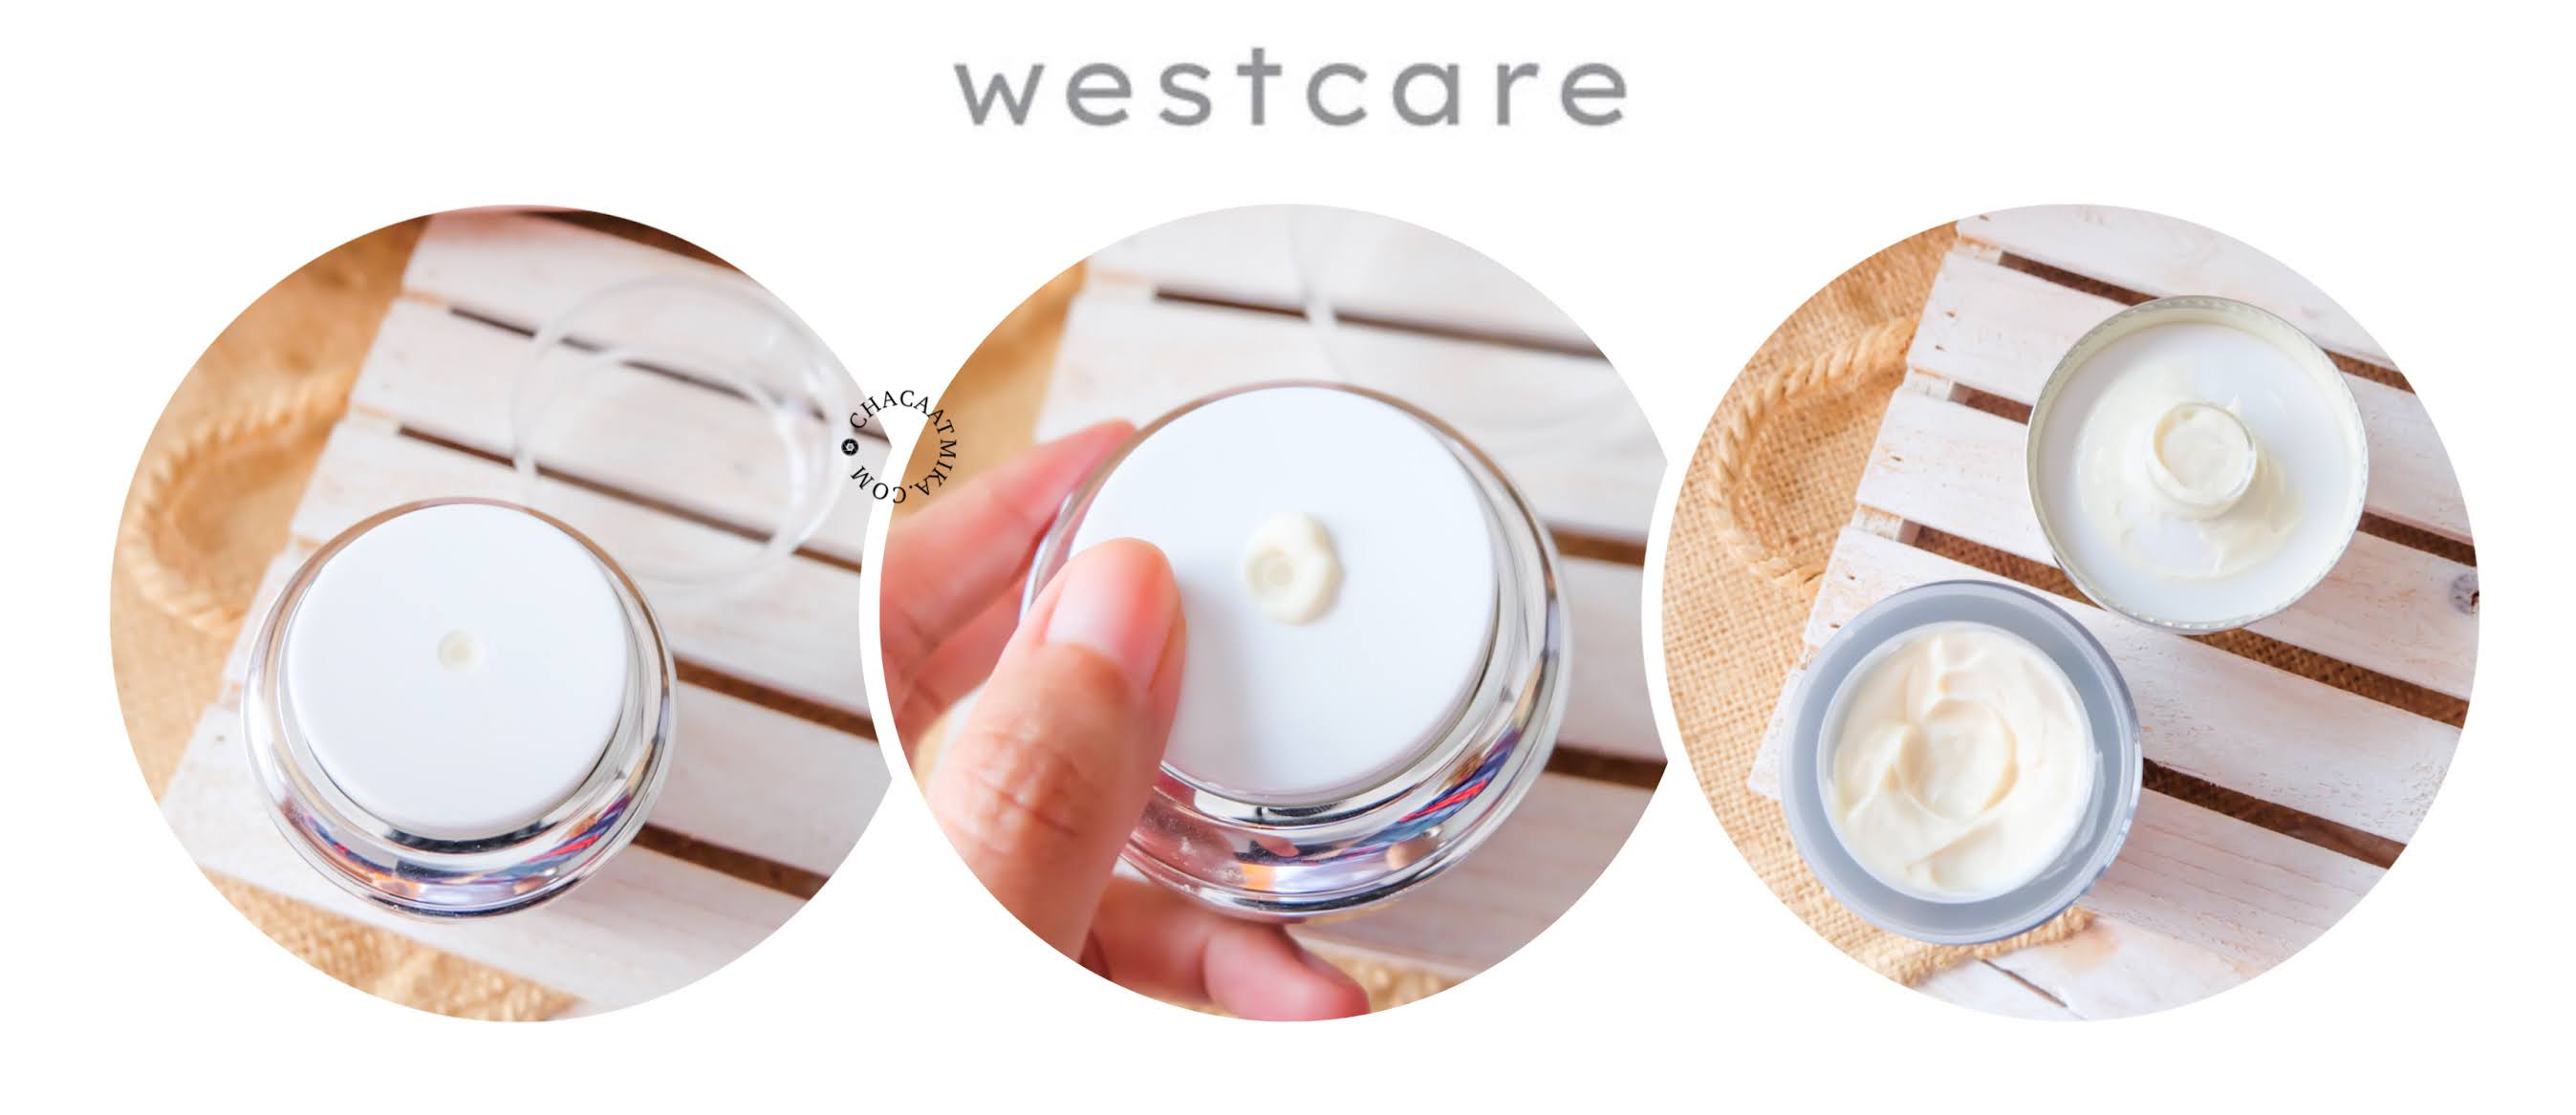 Manfaat Westcare Glowing Moist Cloud Creme